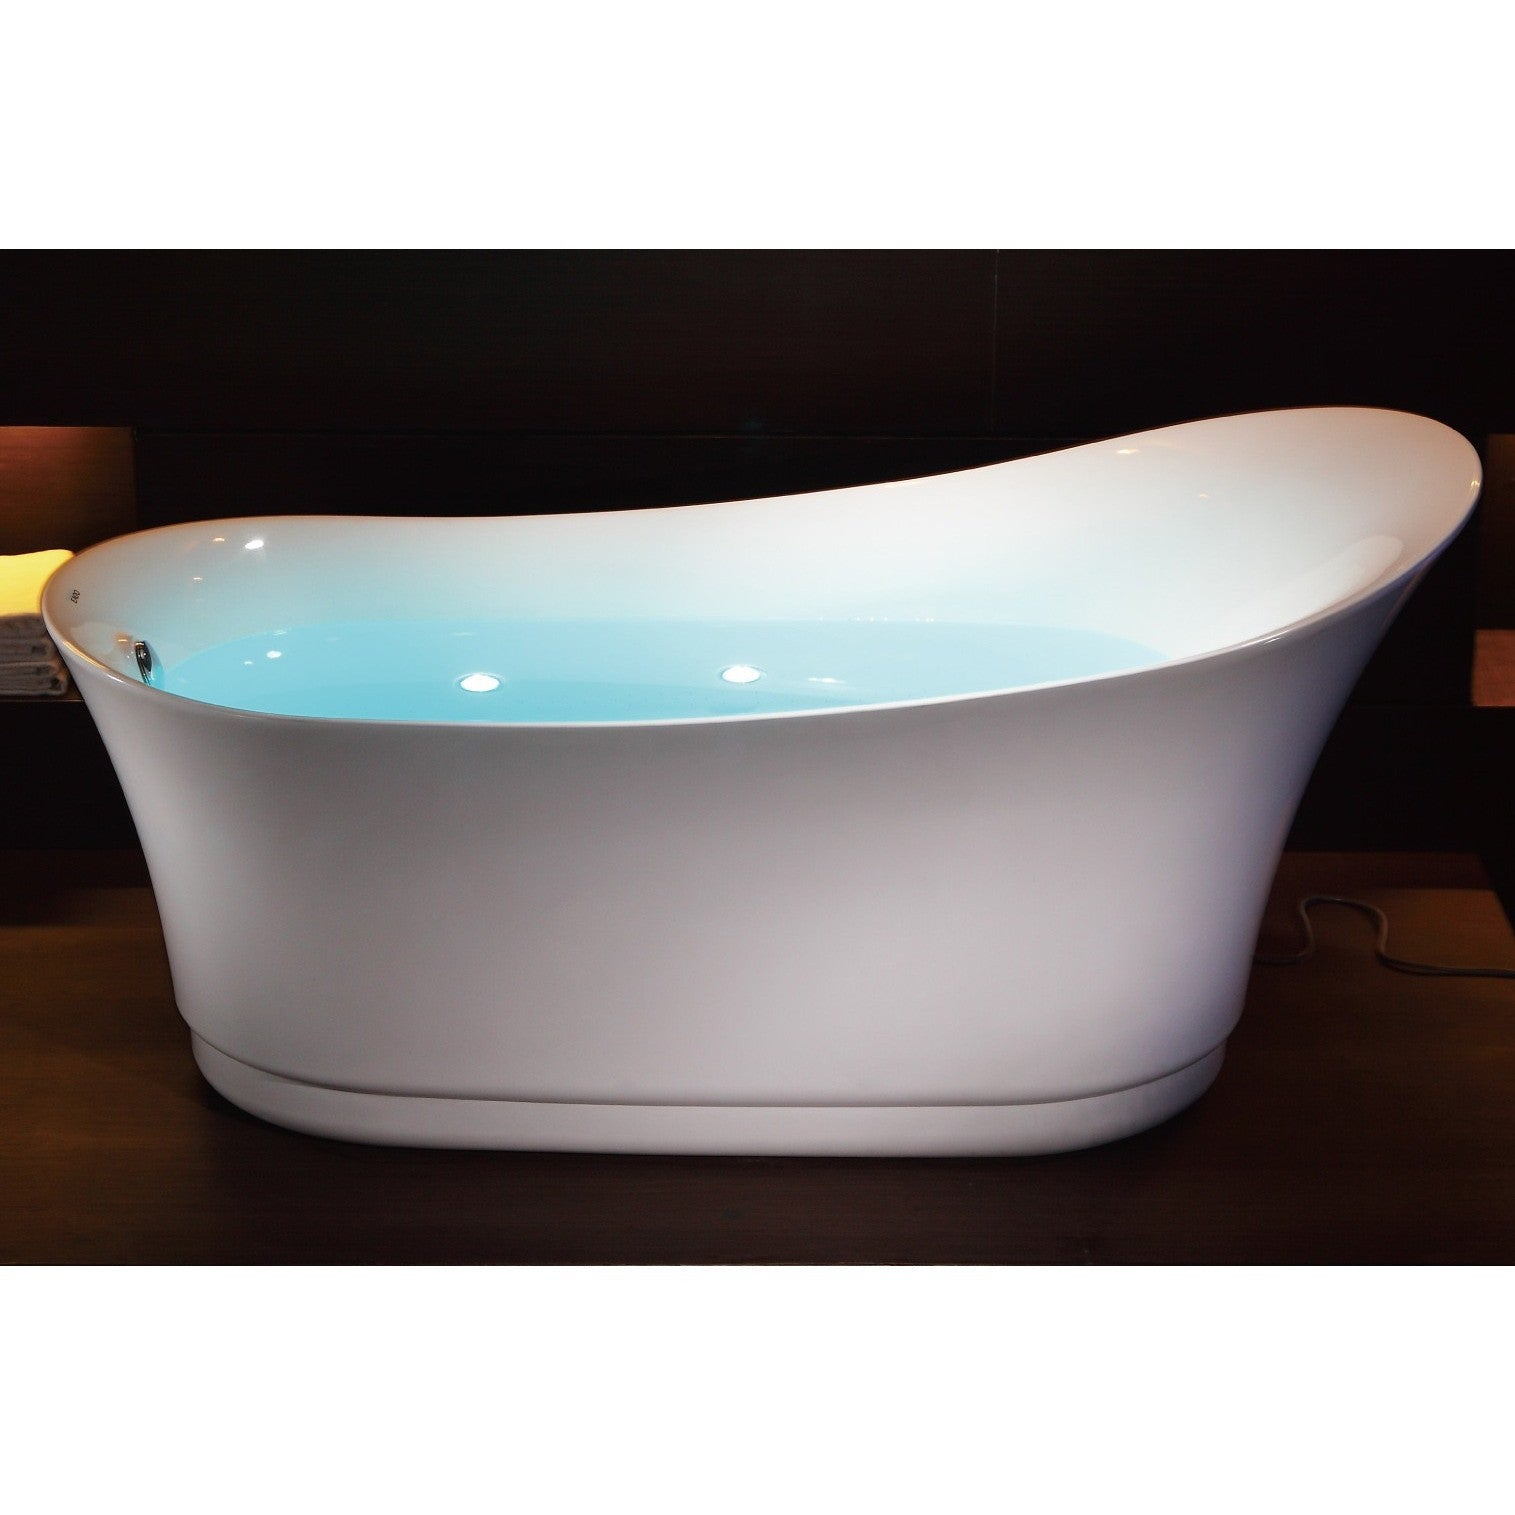 EAGO AM2140 Six Foot White Free Standing Air Bubble Bathtub - Luxury ...